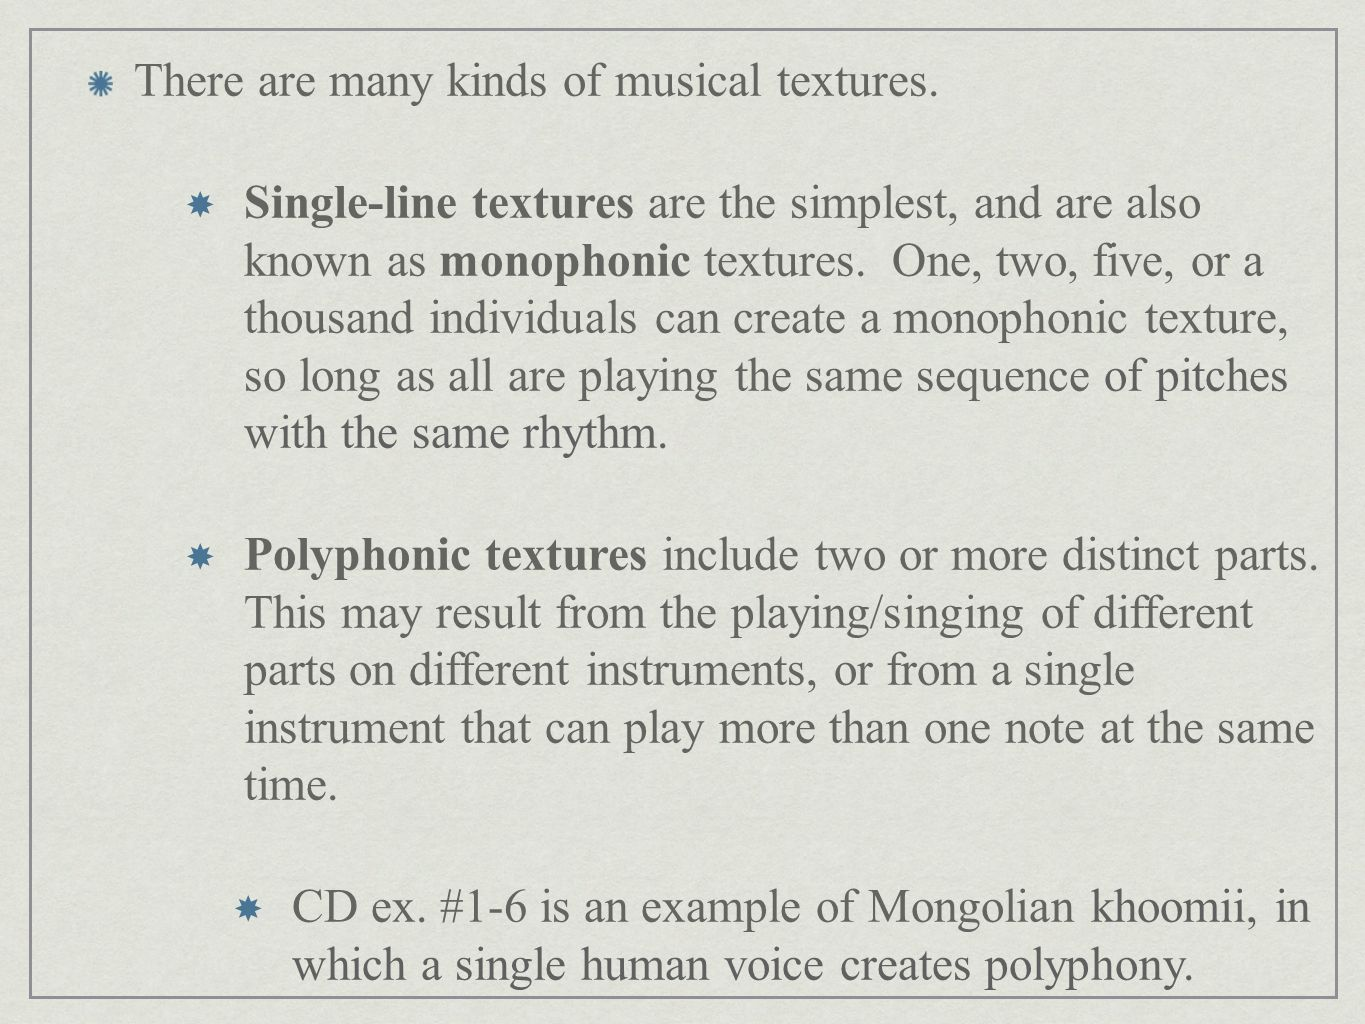 There are many kinds of musical textures.